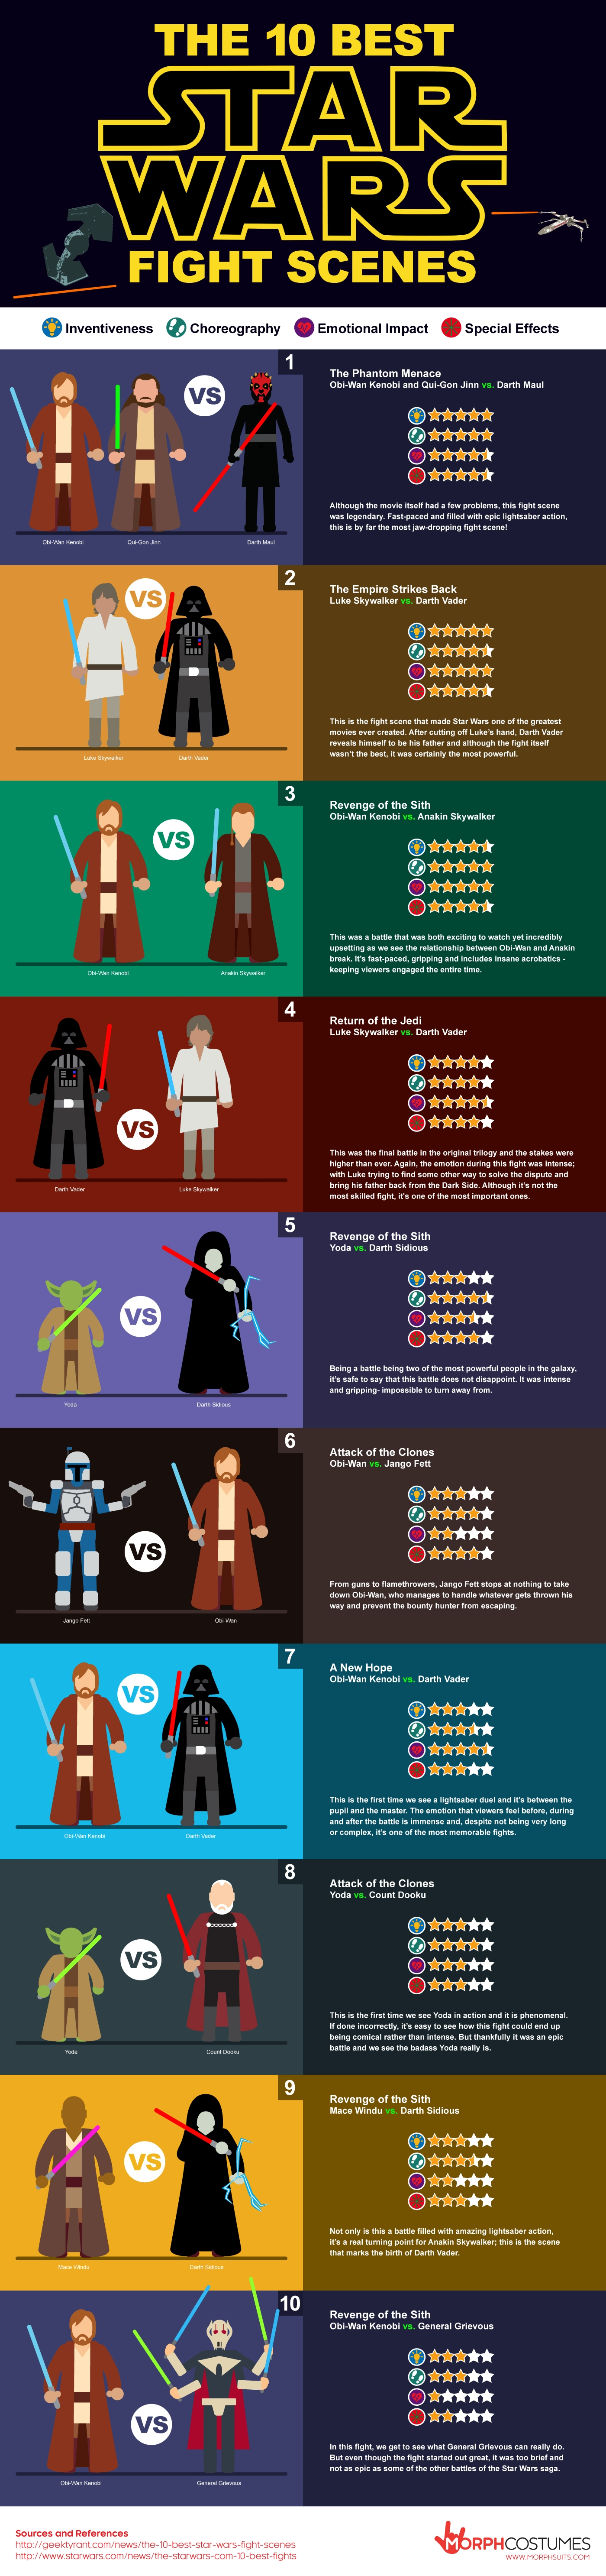 Top 10 STAR WARS Fight Scenes Infographic